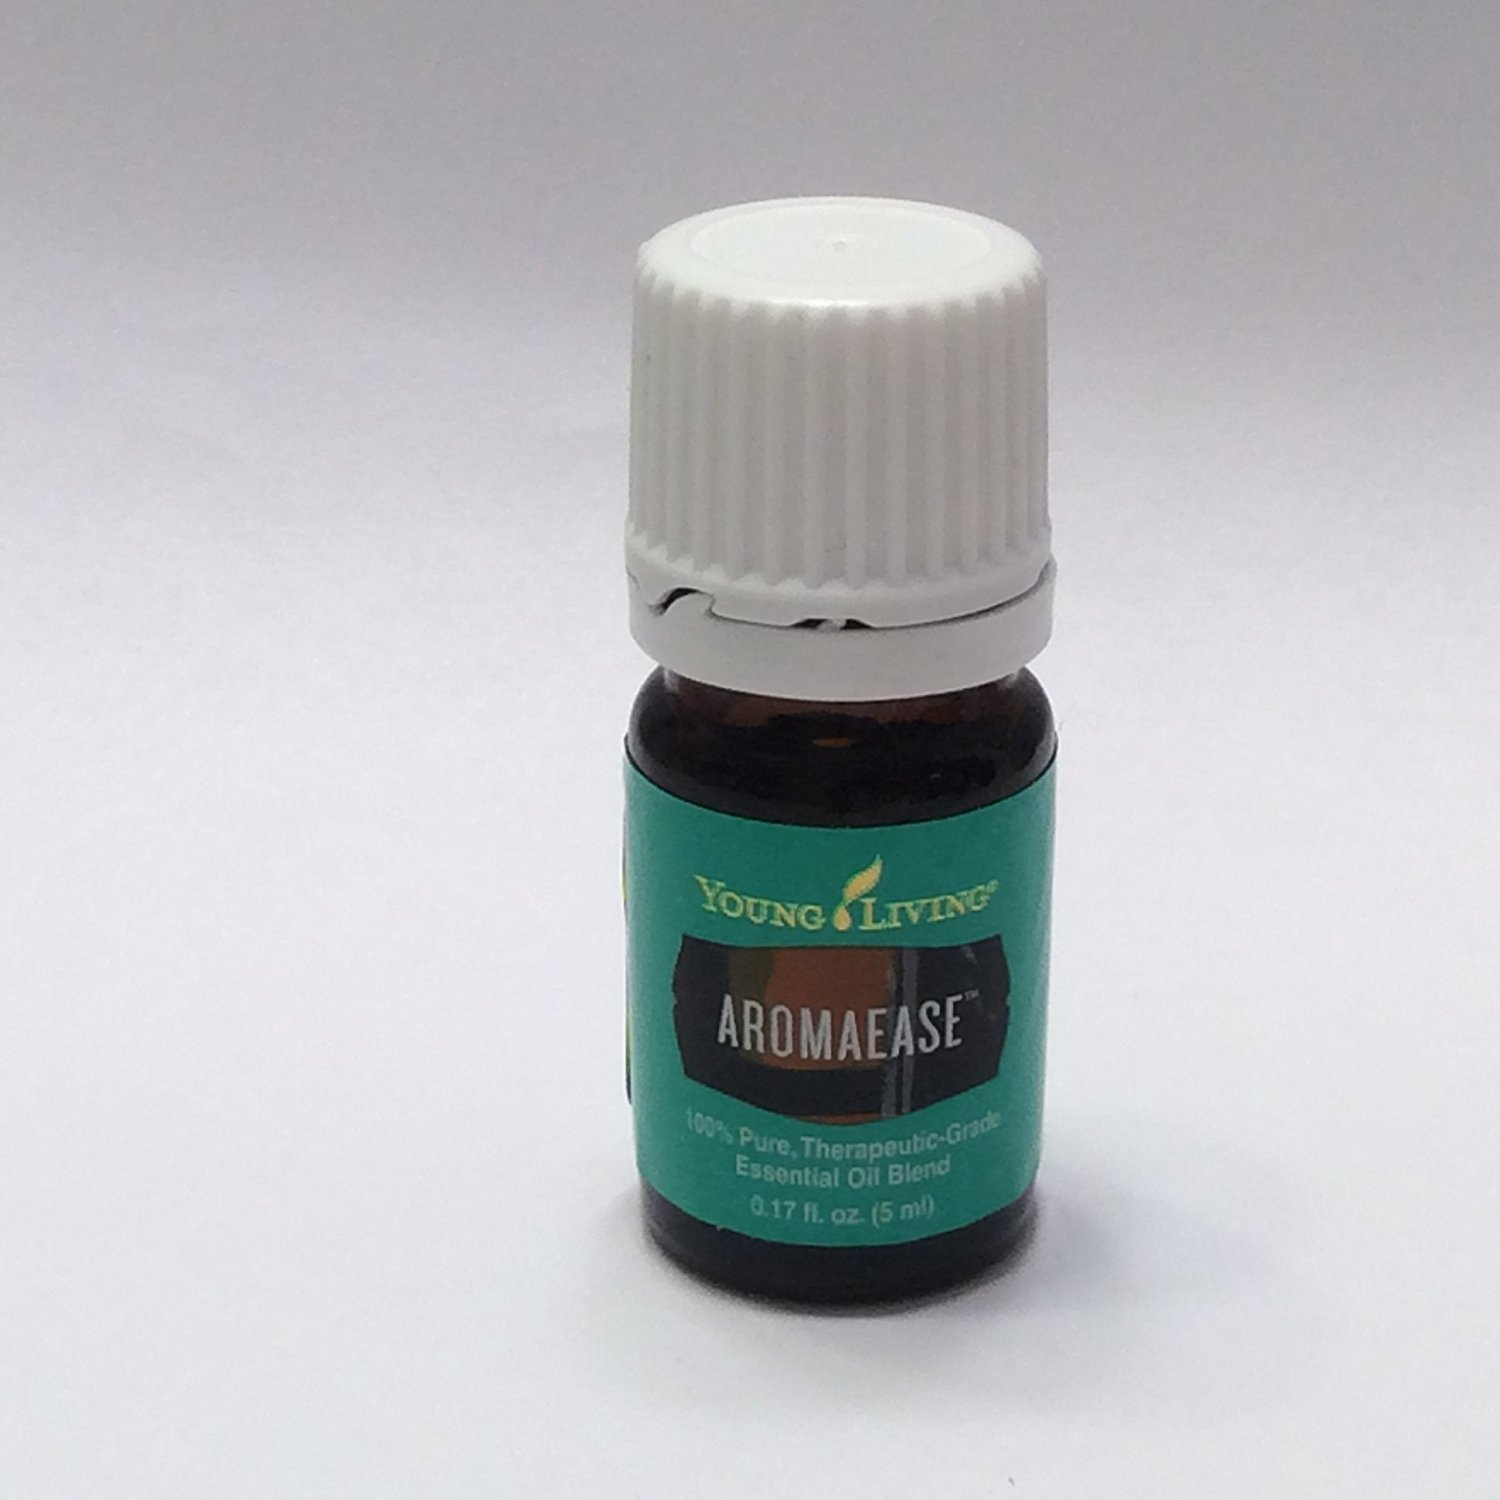 Young Living Aroma Ease (AromaEase) (5 ml)